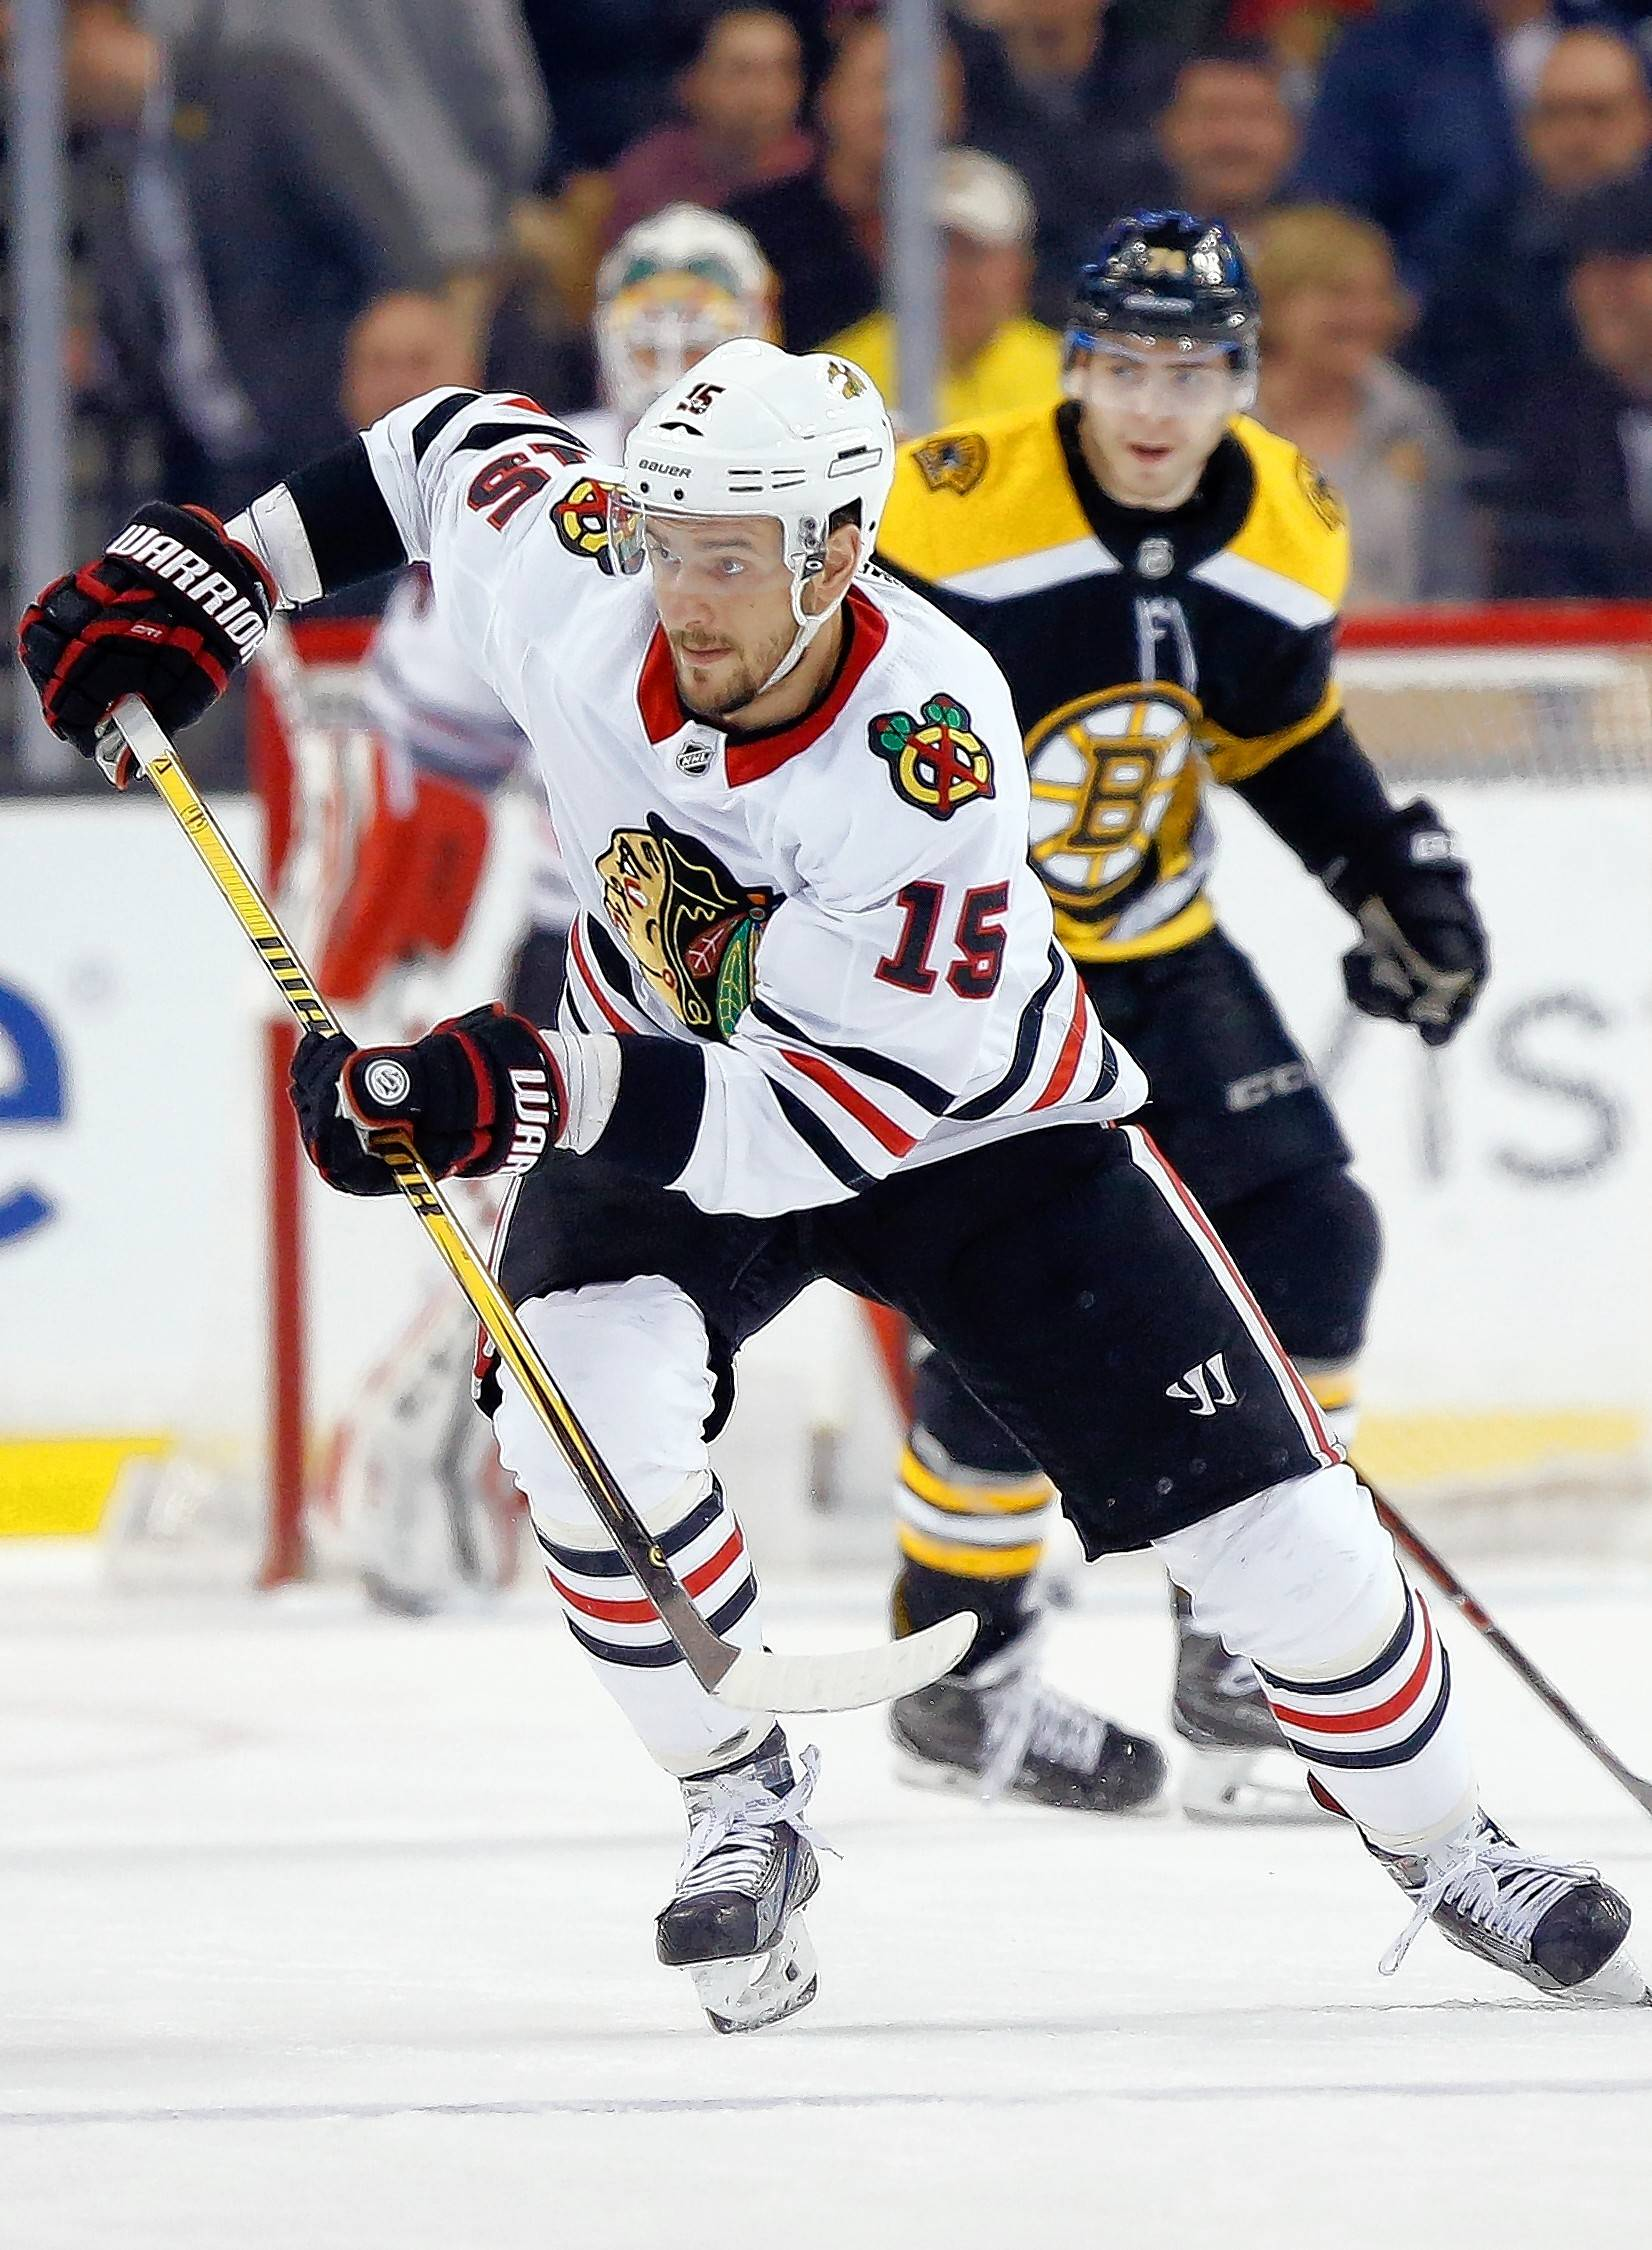 Blackhawks' Artem Anisimov started Week 2 of training camp centering Nick Schmaltz and Patrick Kane.